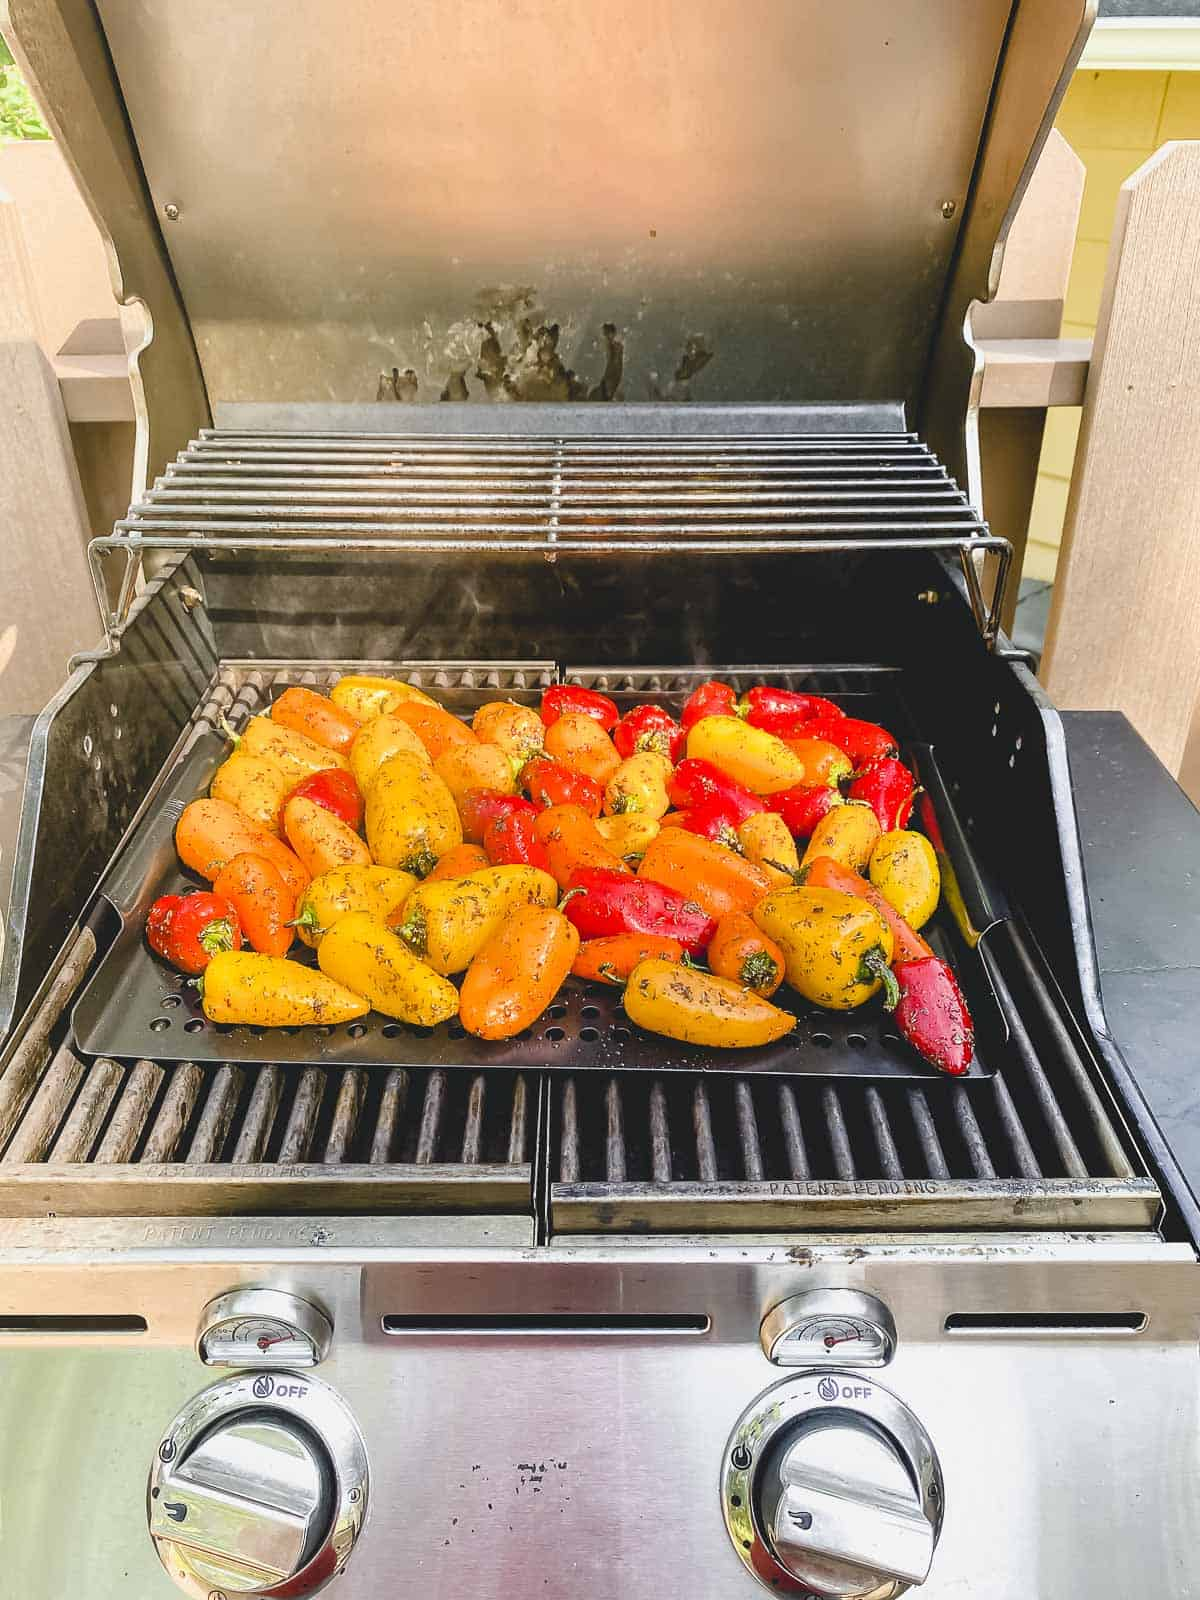 Sweet peppers on a grill pan on the grill